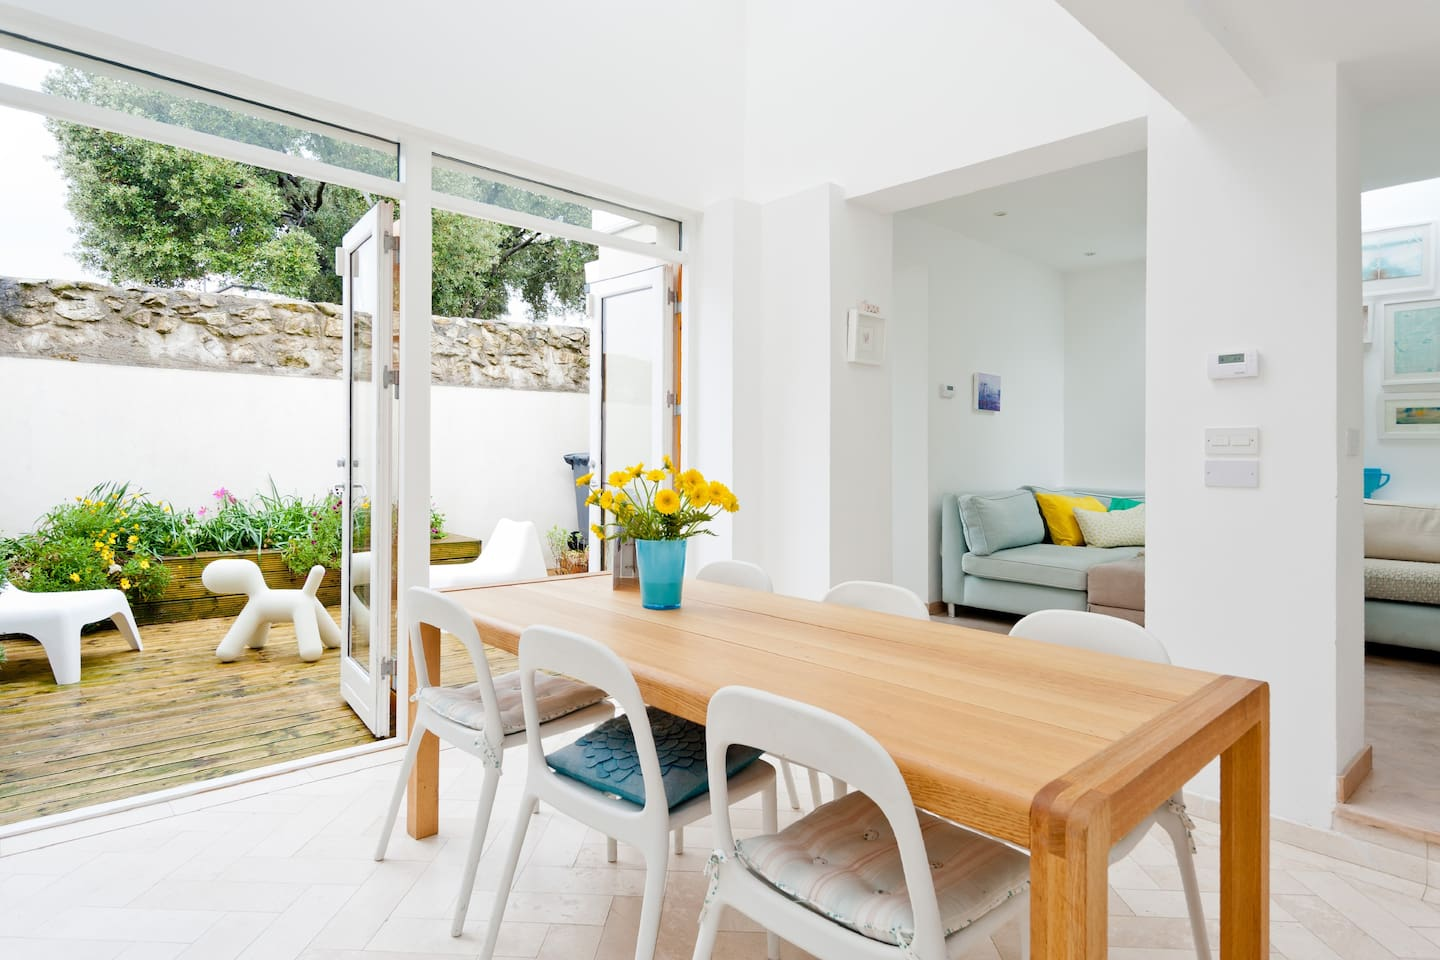 Glass doors to courtyard that completely open up the back wall of the house for a bright and airy indoor/outdoor room in summer.